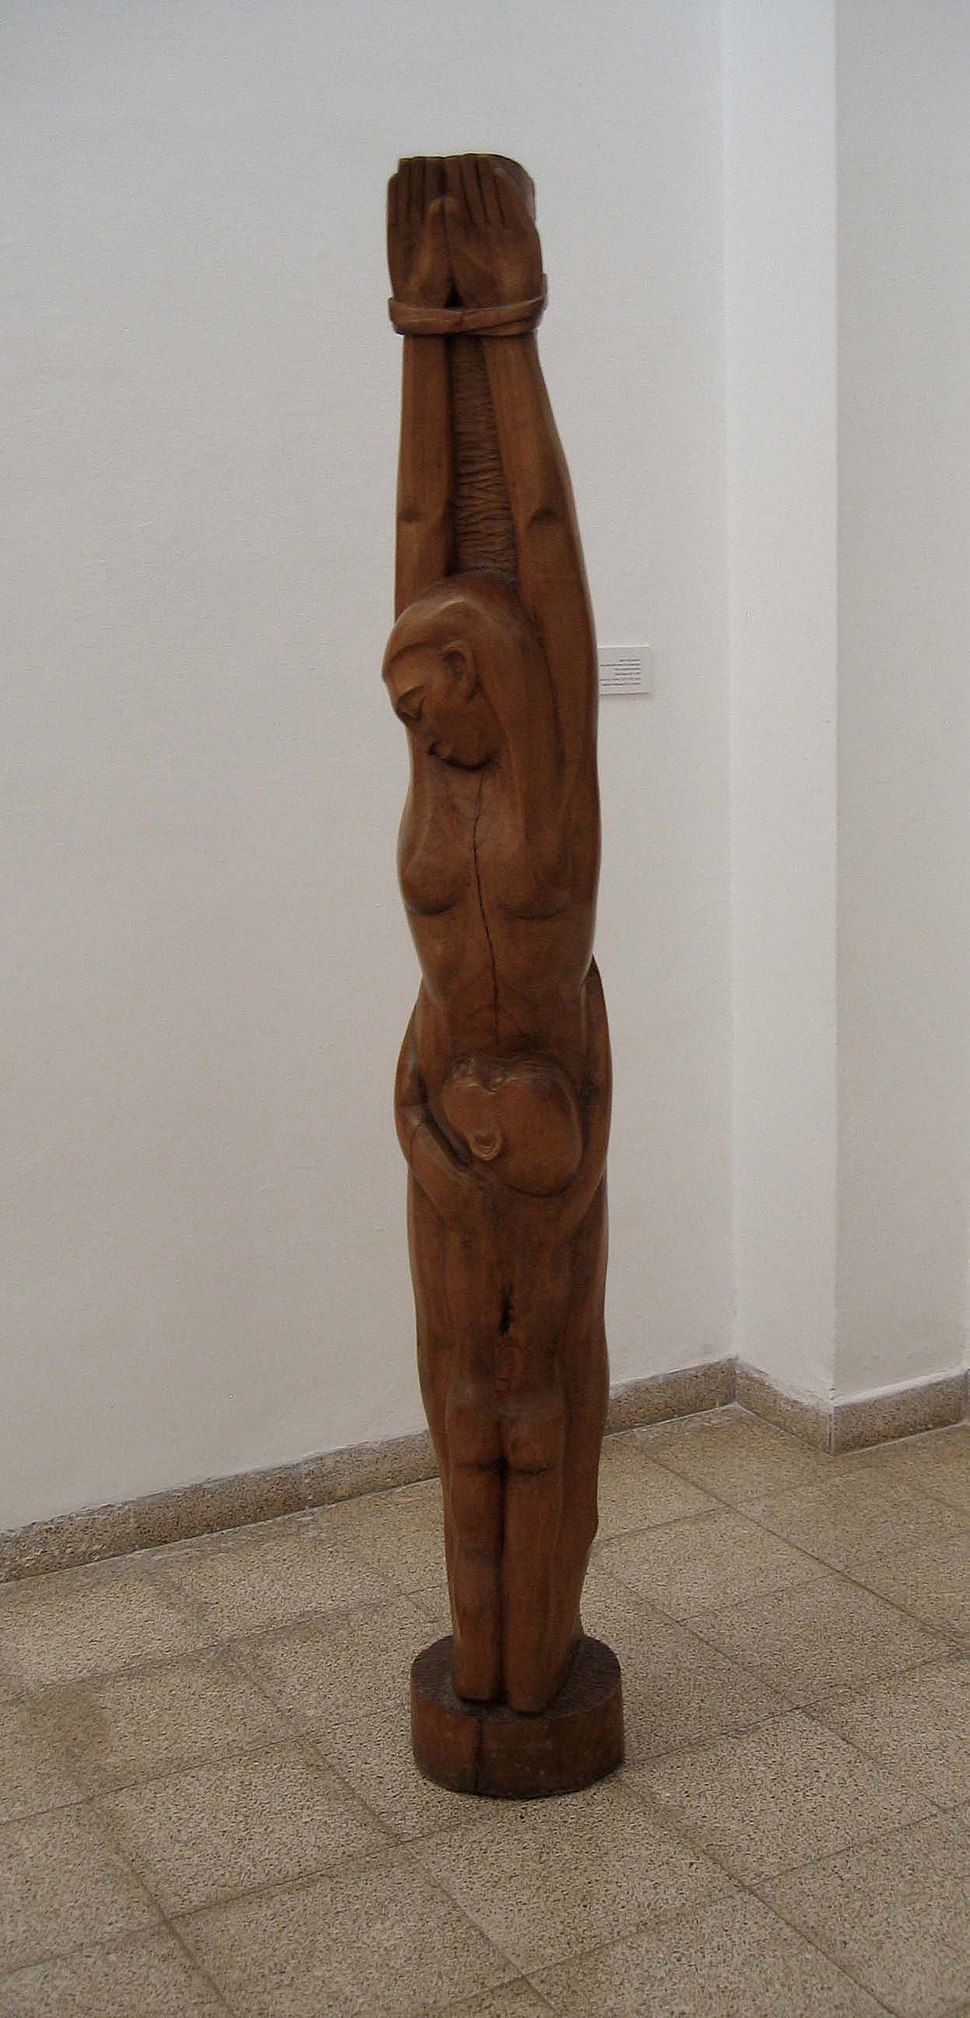 The torured mother and her son (the expdous from europe, 1945) by yehiel shemi